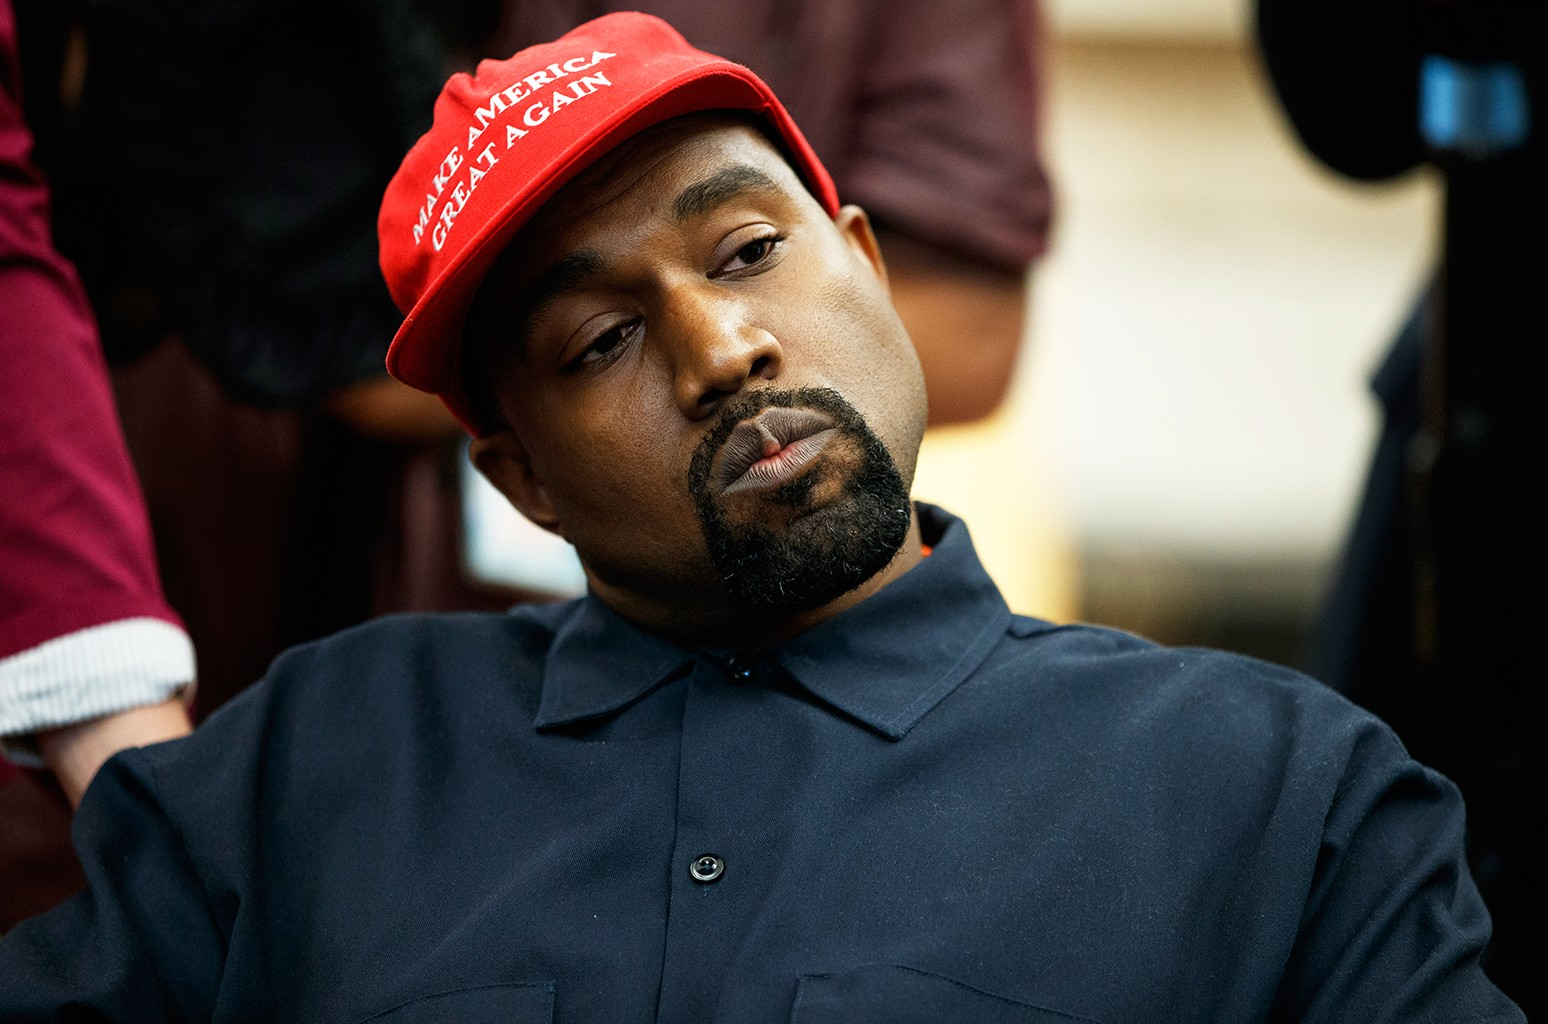 Kanye West Votes For Himself In 2020 Presidential Election By Gabs